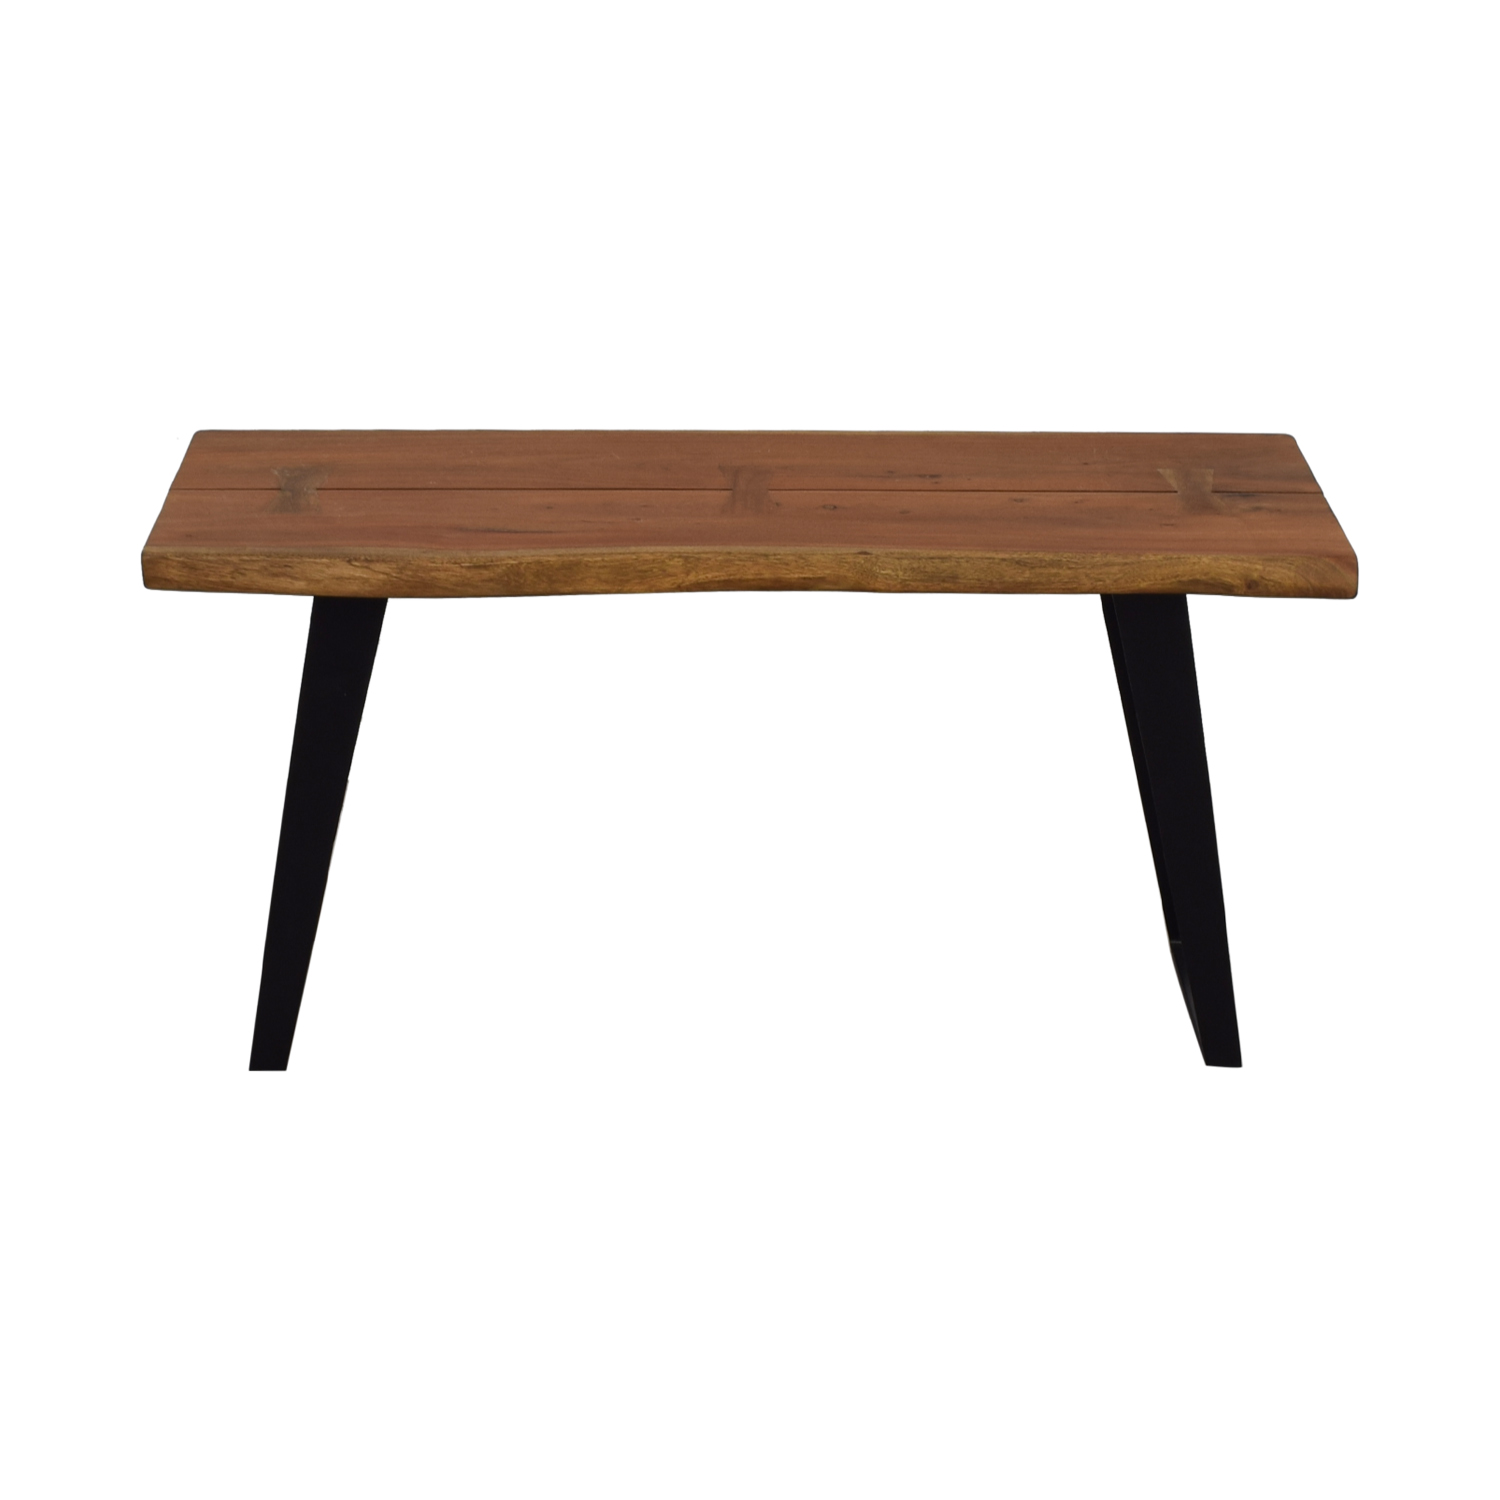 shop Crate & Barrel Yukon Wood and Metal Console Table Crate & Barrel Sofas